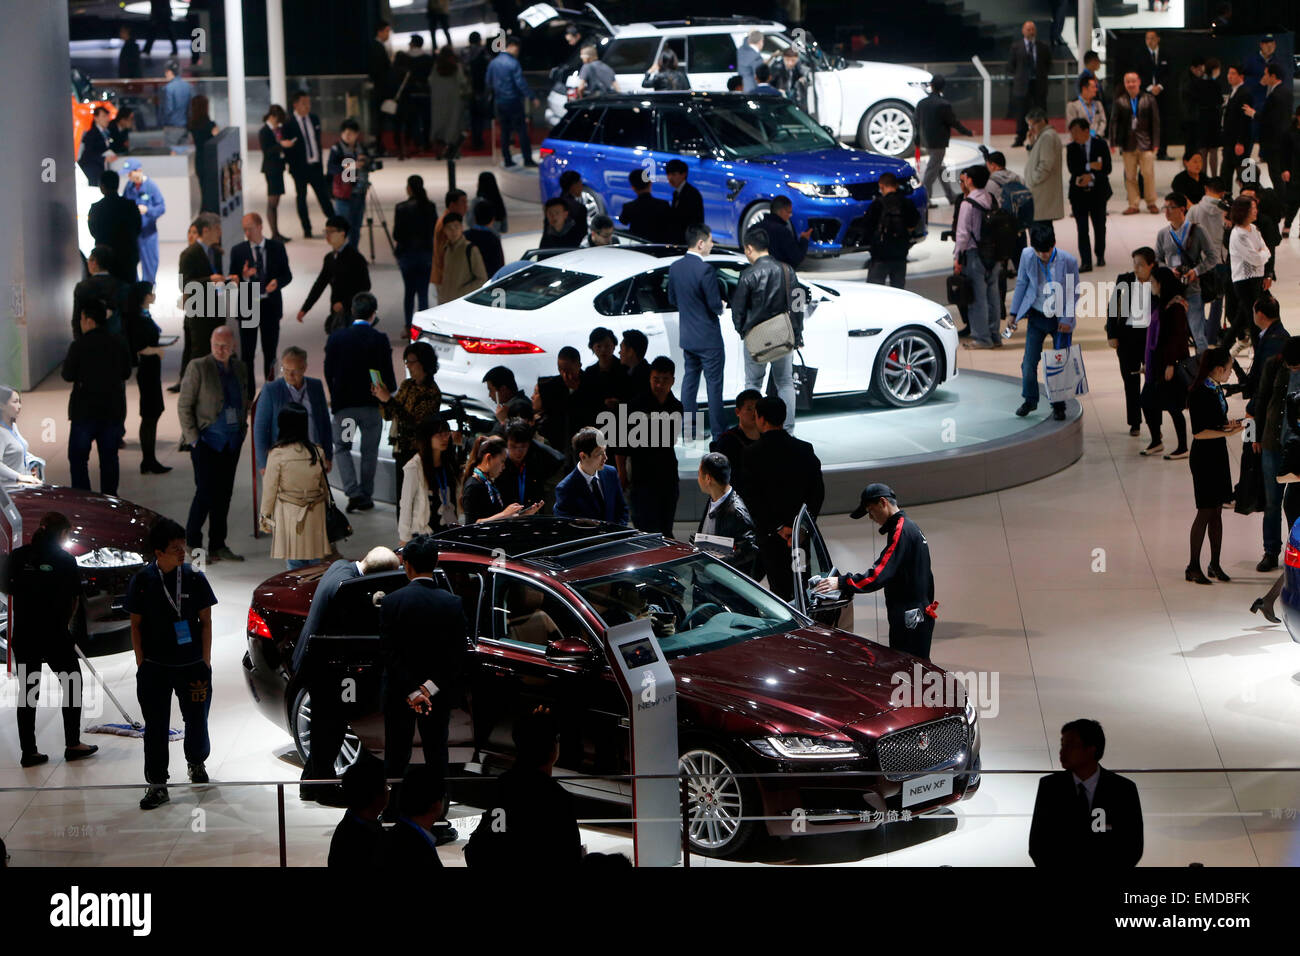 Shanghai, China. 20th Apr, 2015. People visit the Auto Shanghai 2015 in east China's Shanghai, April 20, 2015. - Stock Image